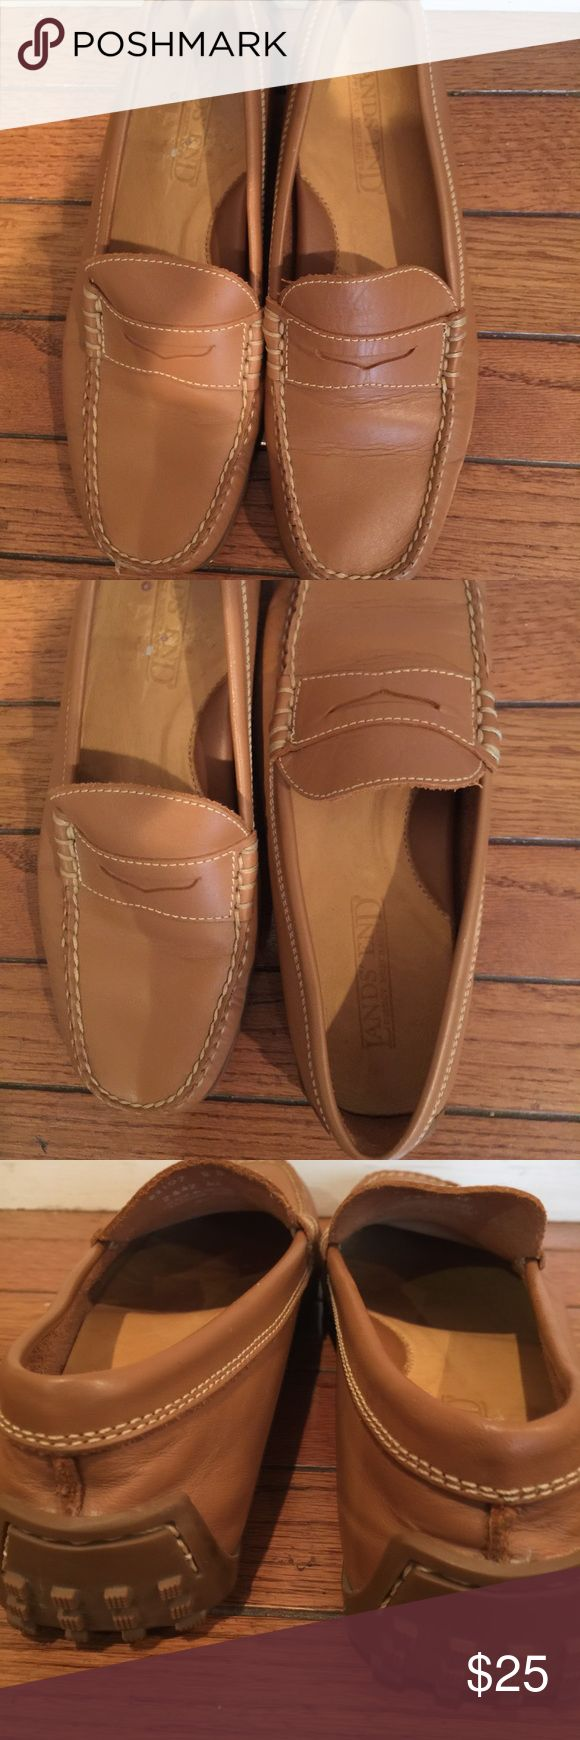 Land's End loafers. Land's End tan loafers. land's End Shoes Flats & Loafers